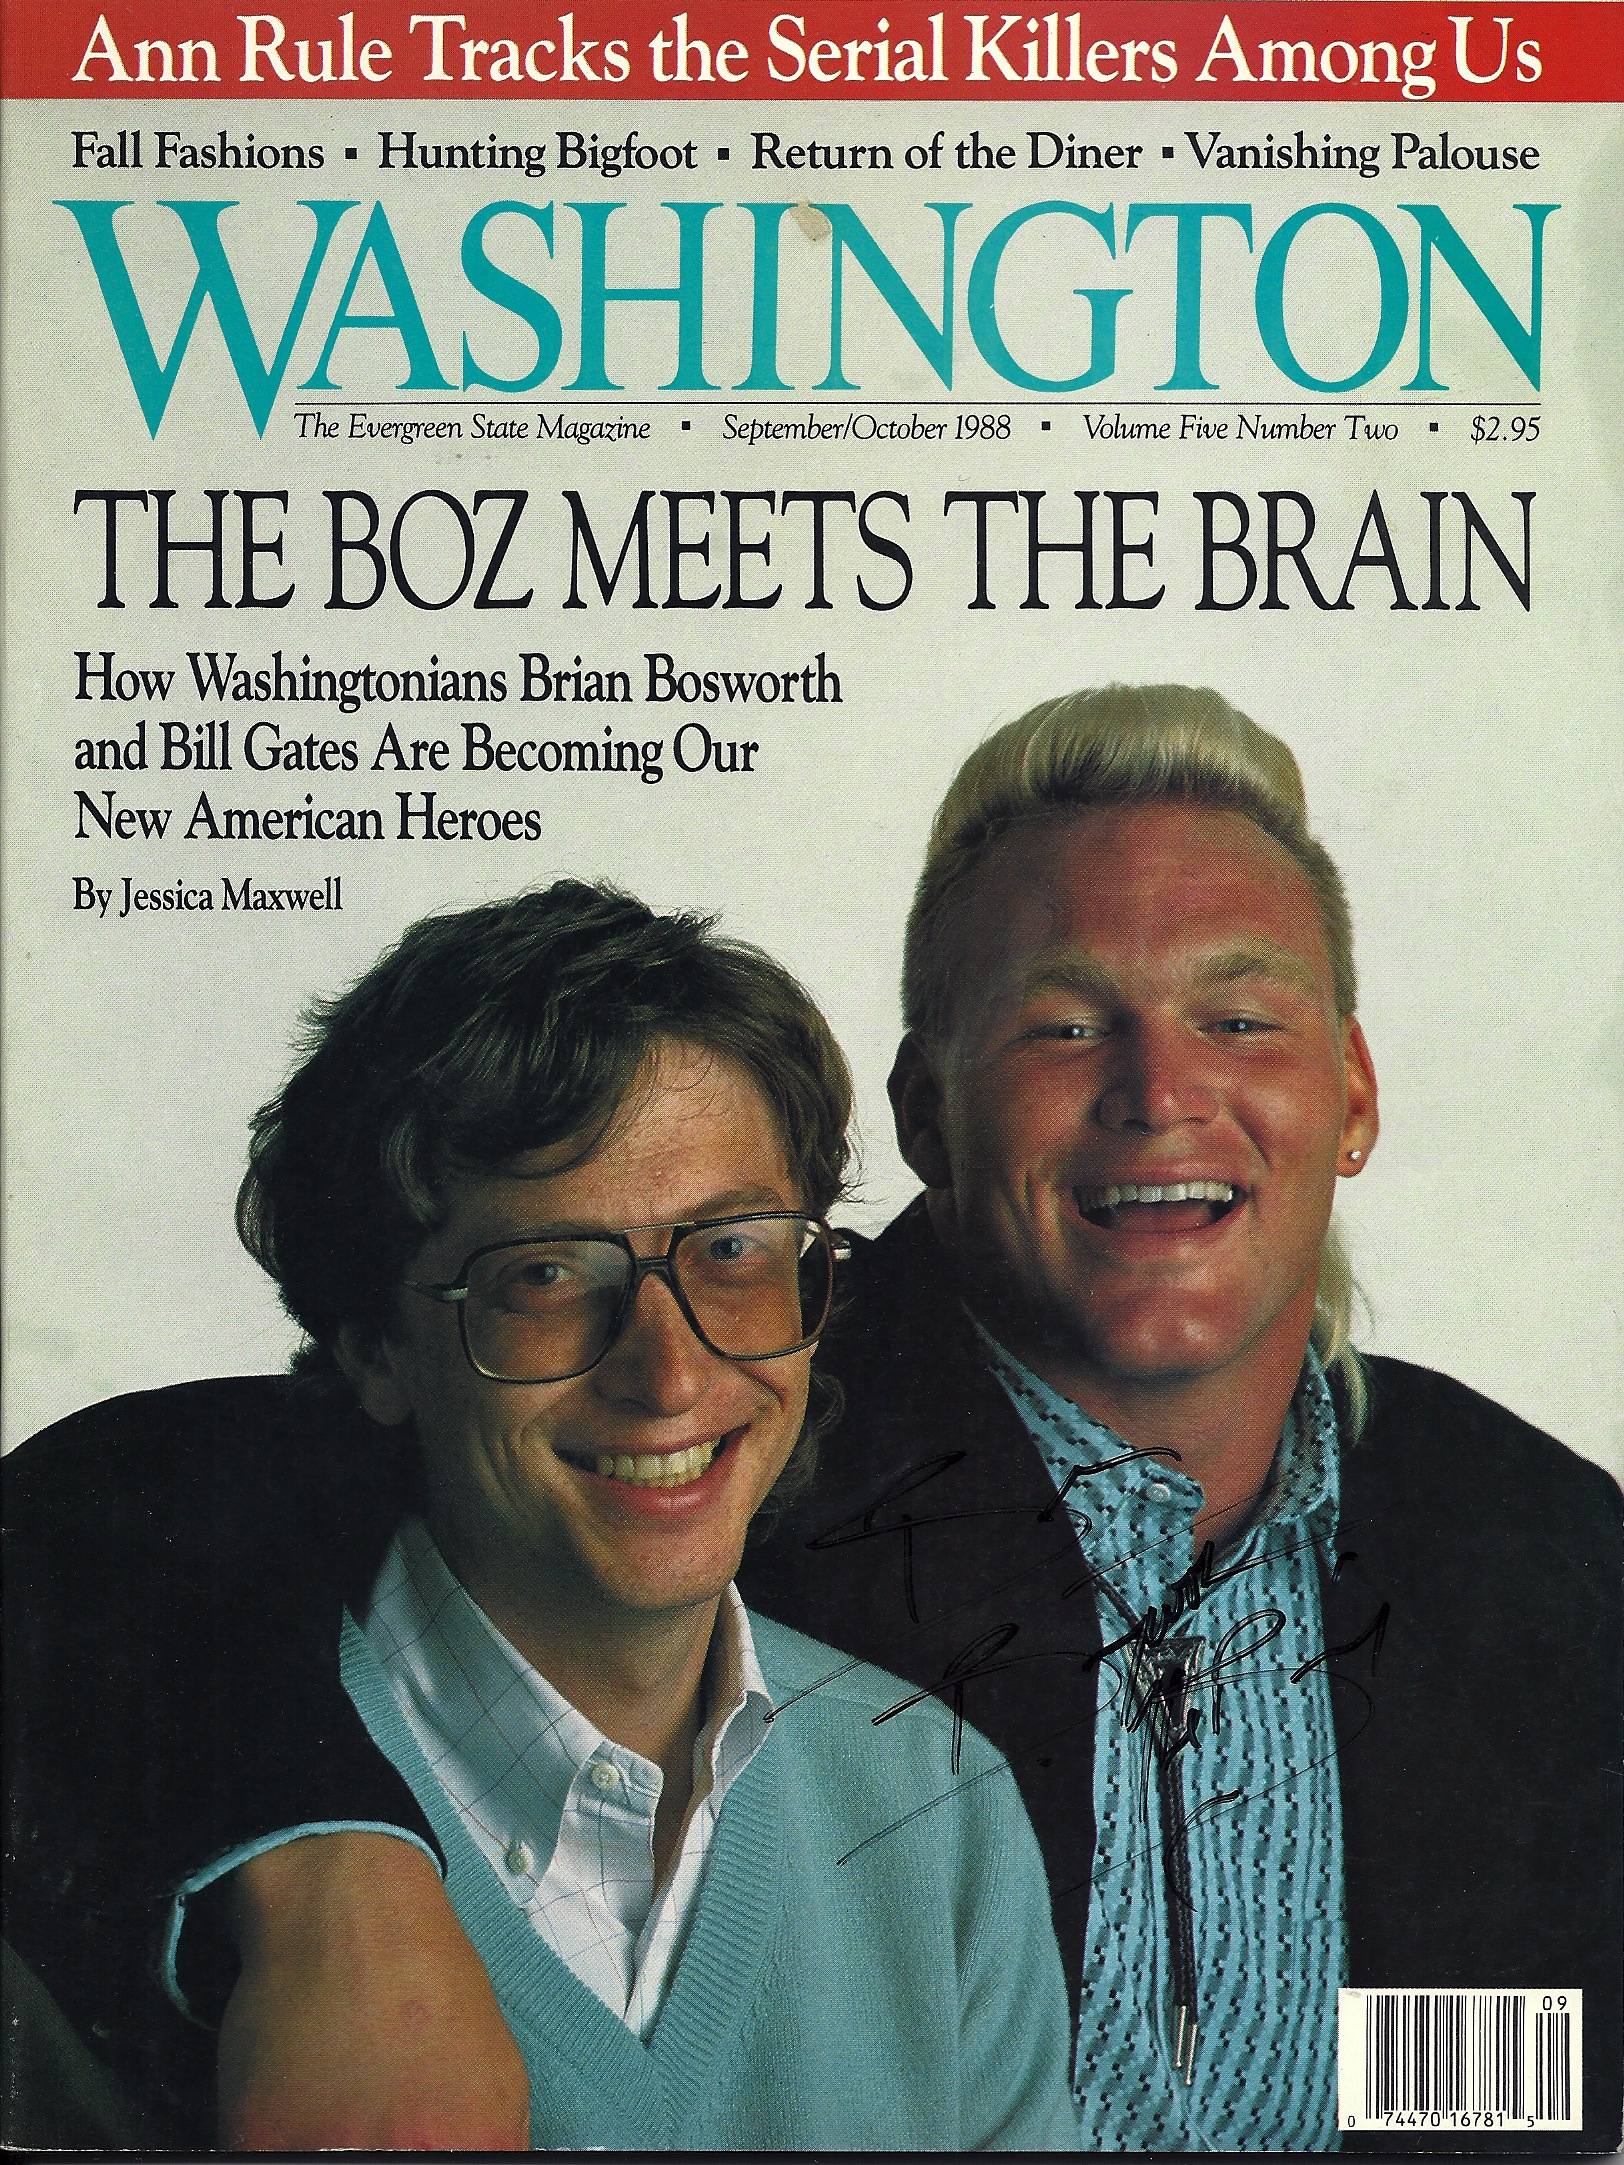 Washington magazine cover